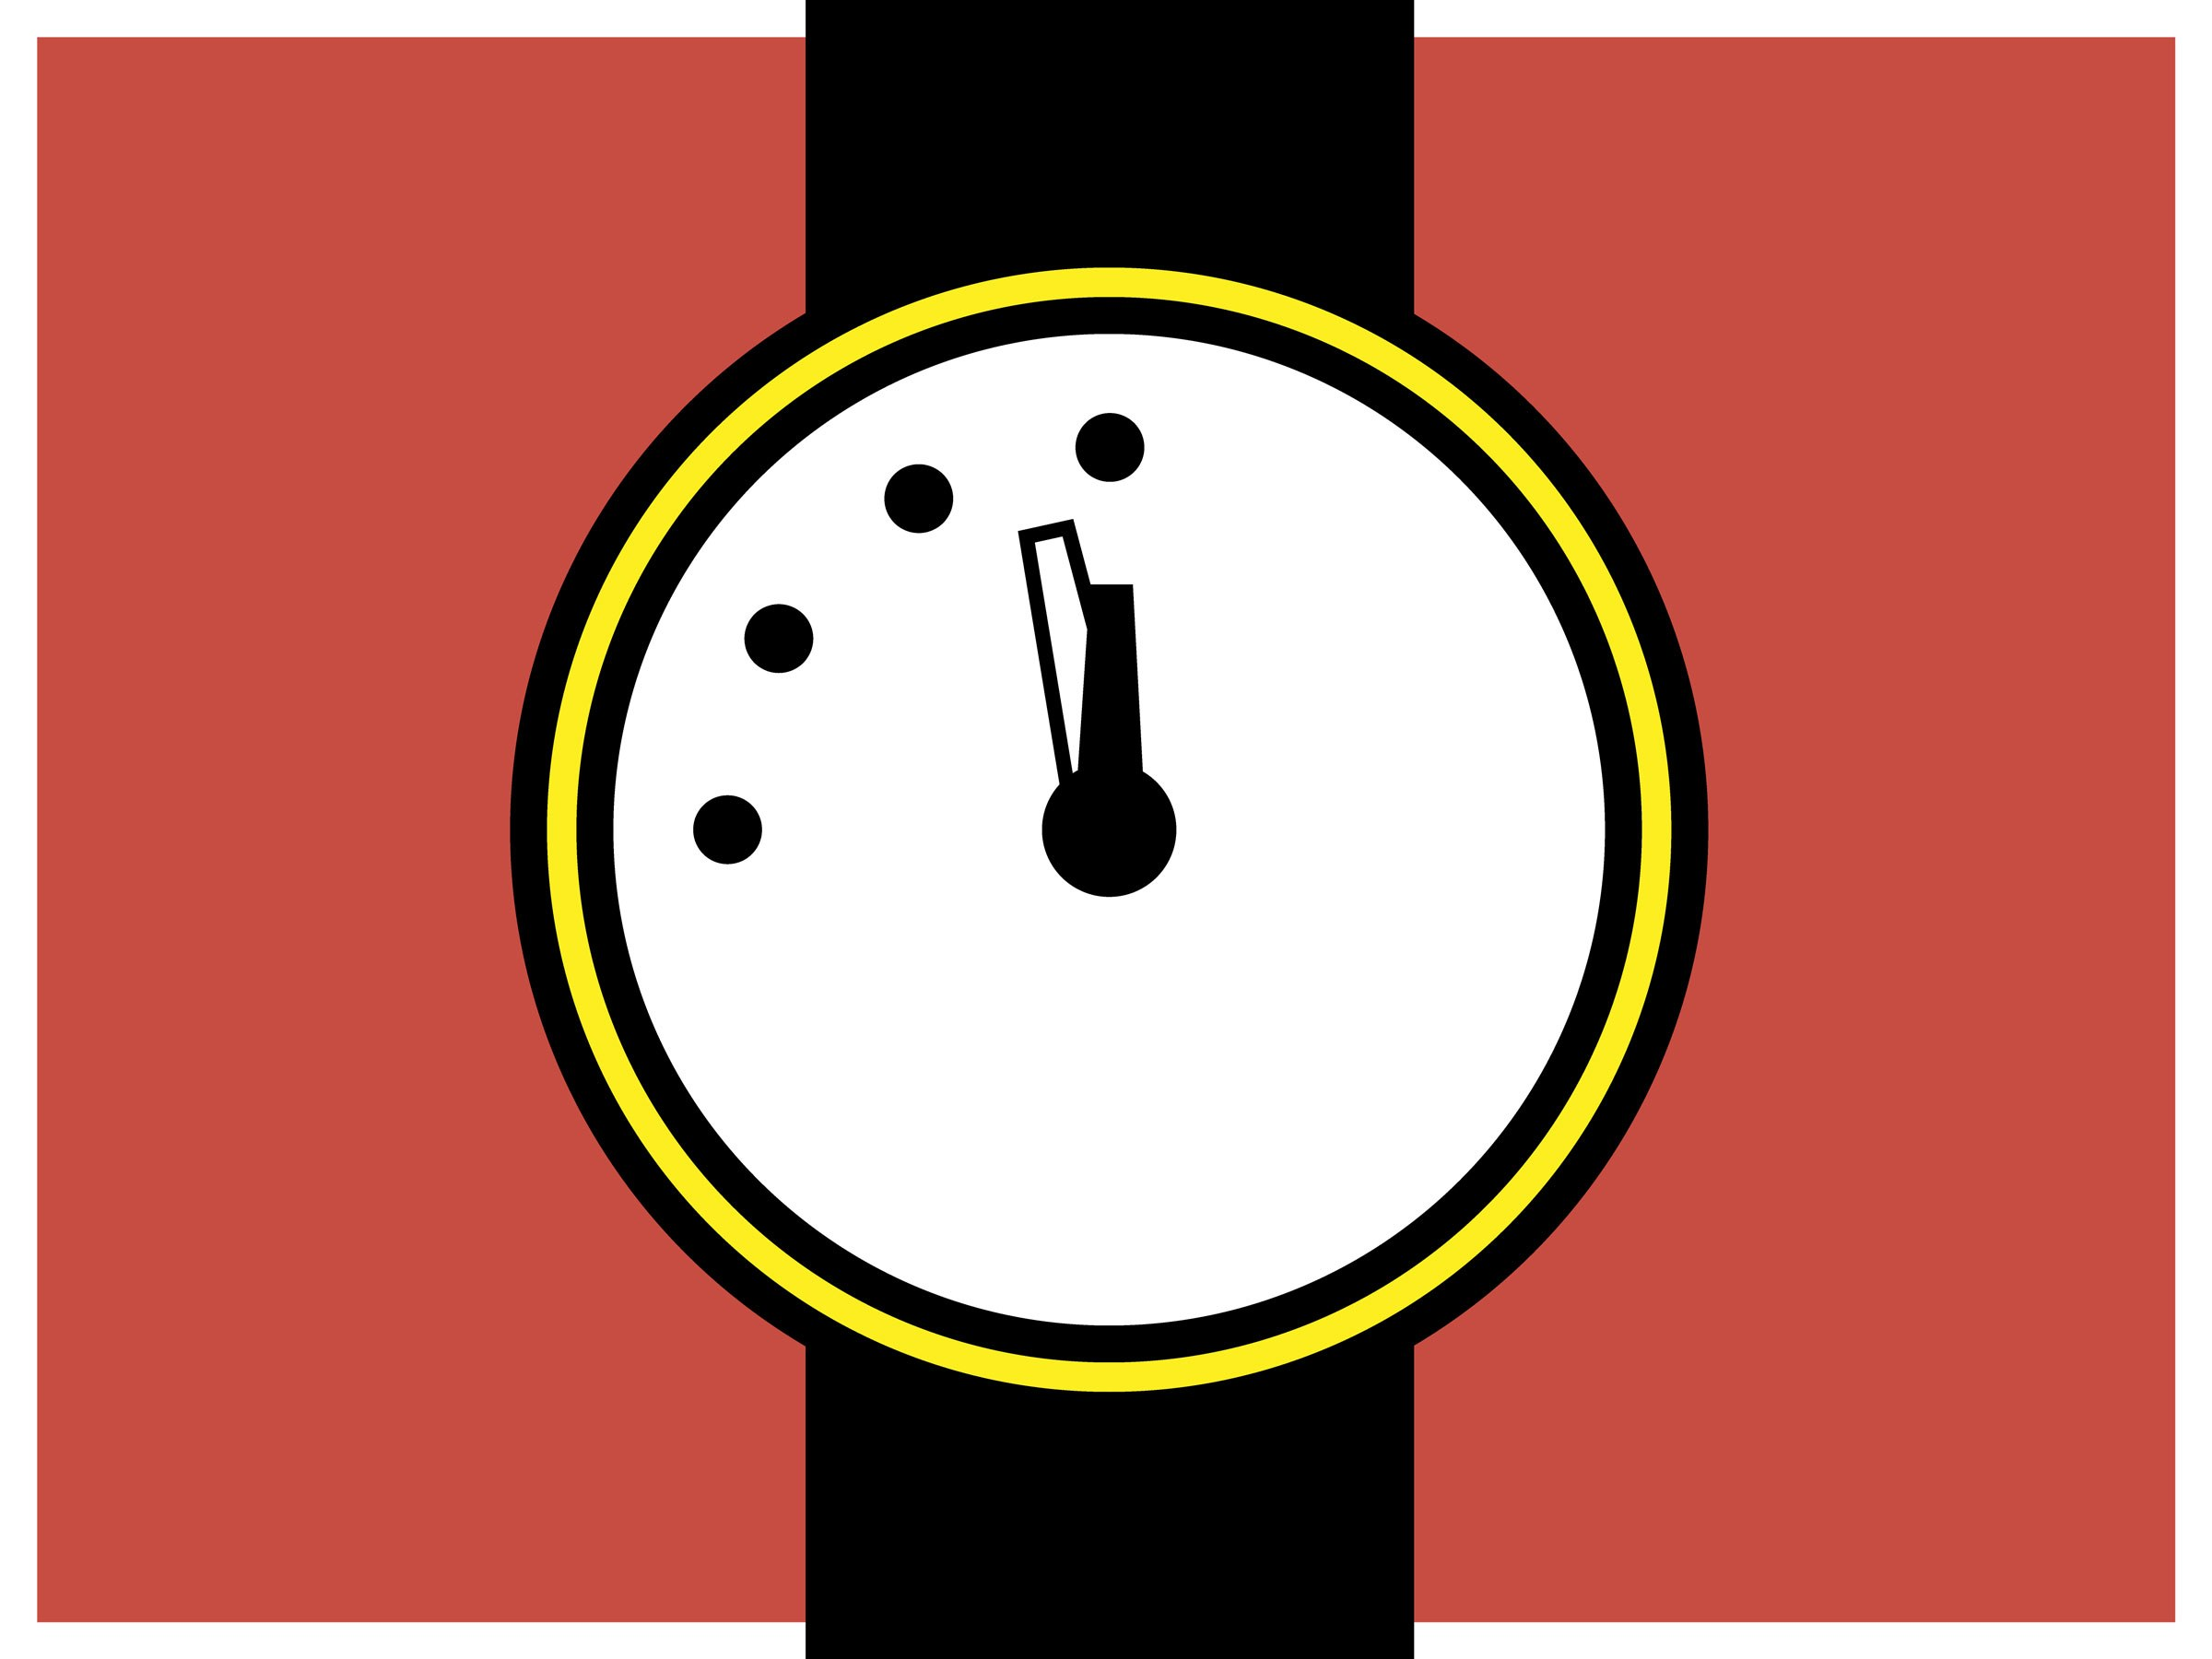 The Doomsday Clock Ticks Closer to Midnight Over Nuclear War Fears.